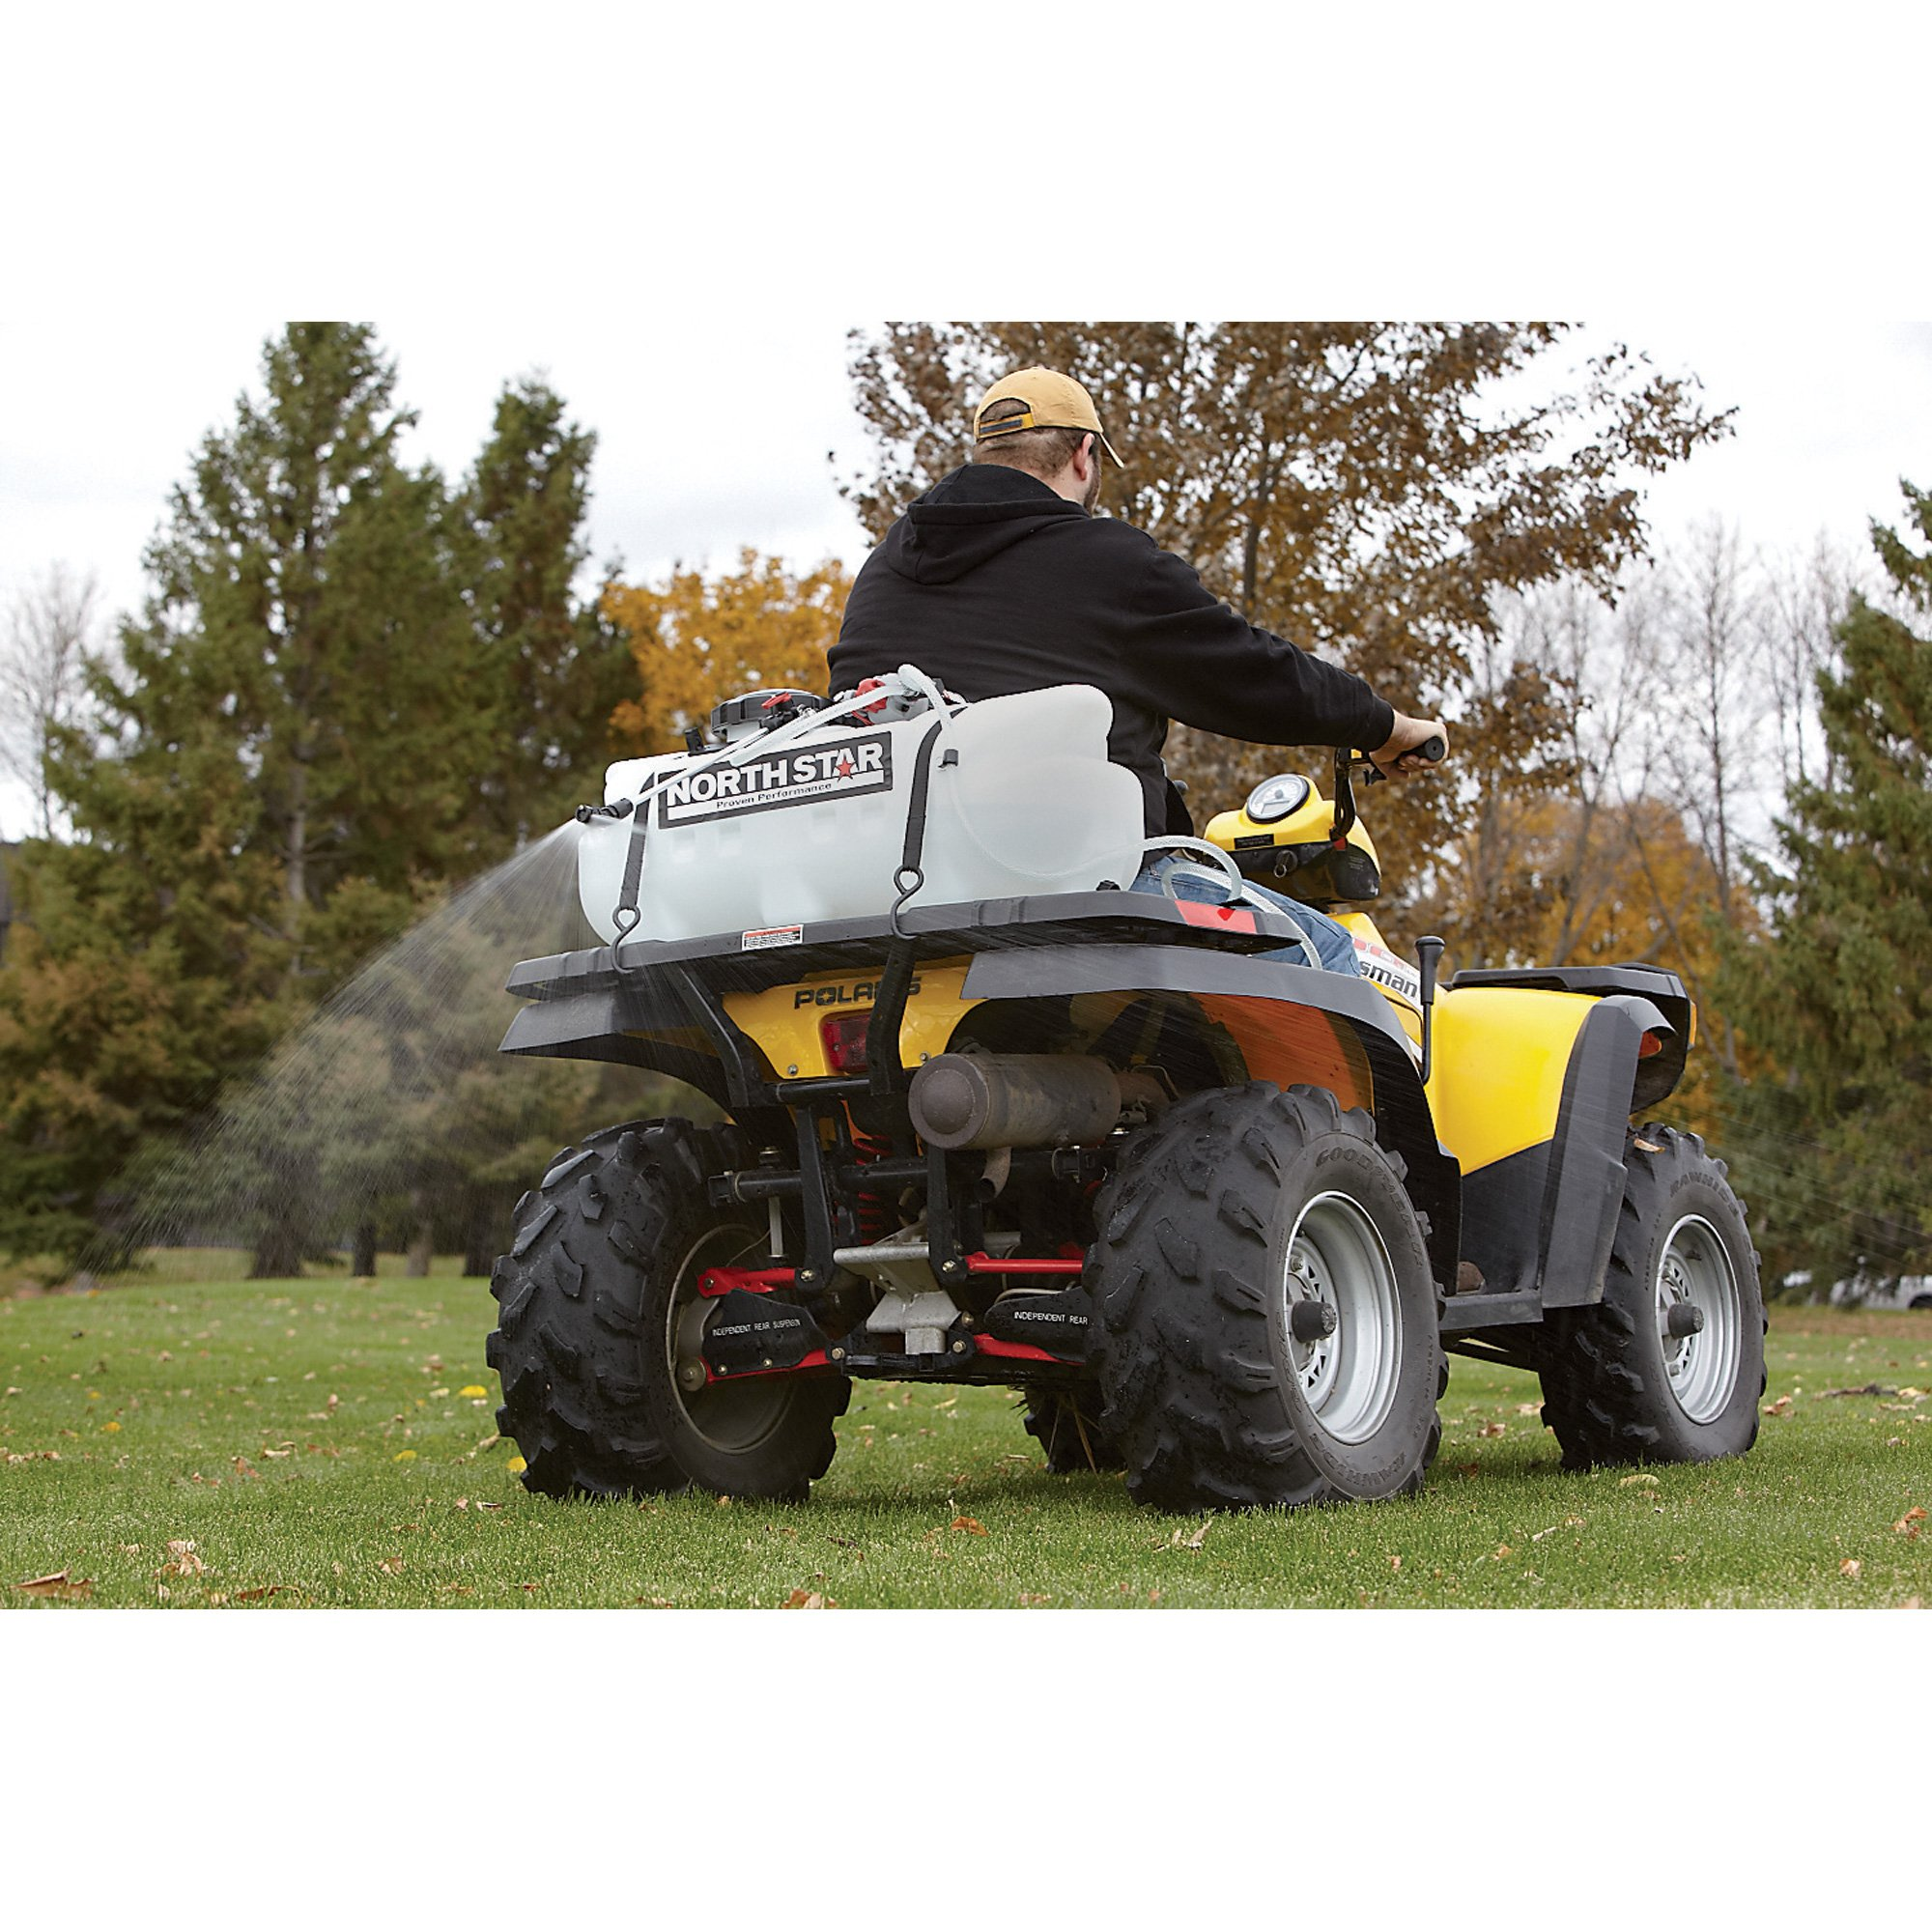 NorthStar ATV Broadcast and Spot Sprayer - 16 Gallon, 2.2 GPM, 12 Volt by NorthStar